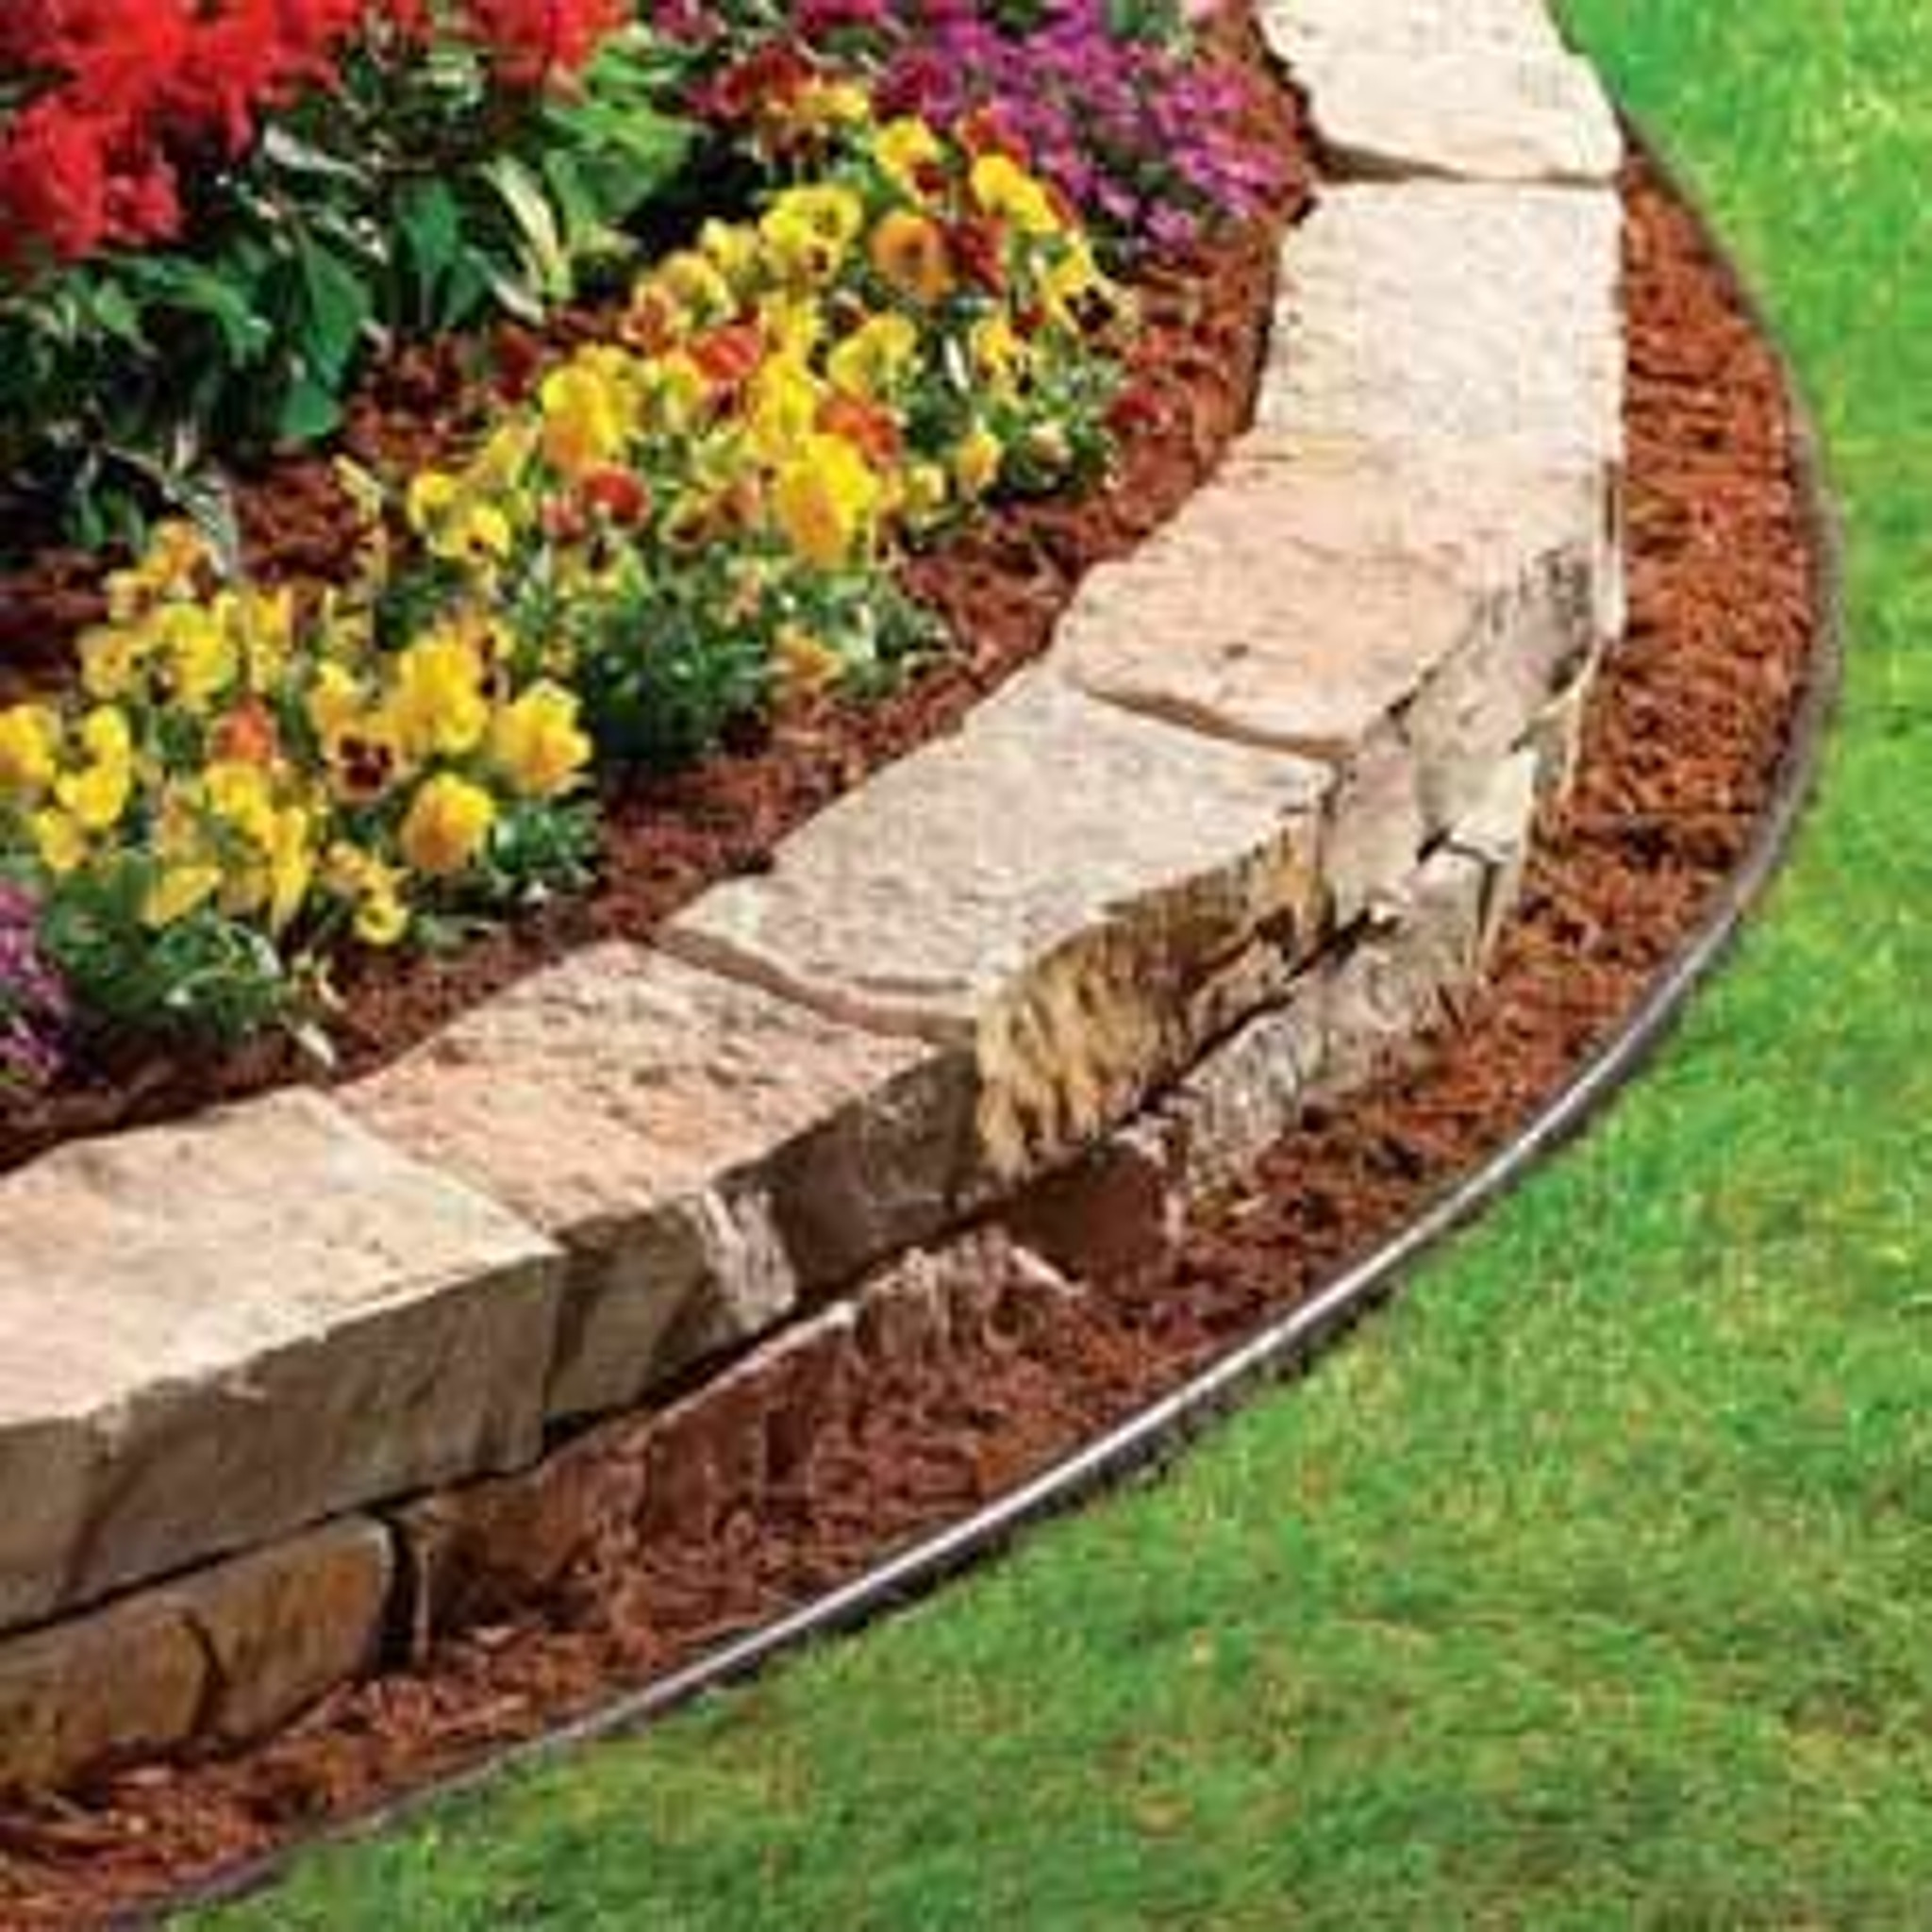 Lawn edging for beddings